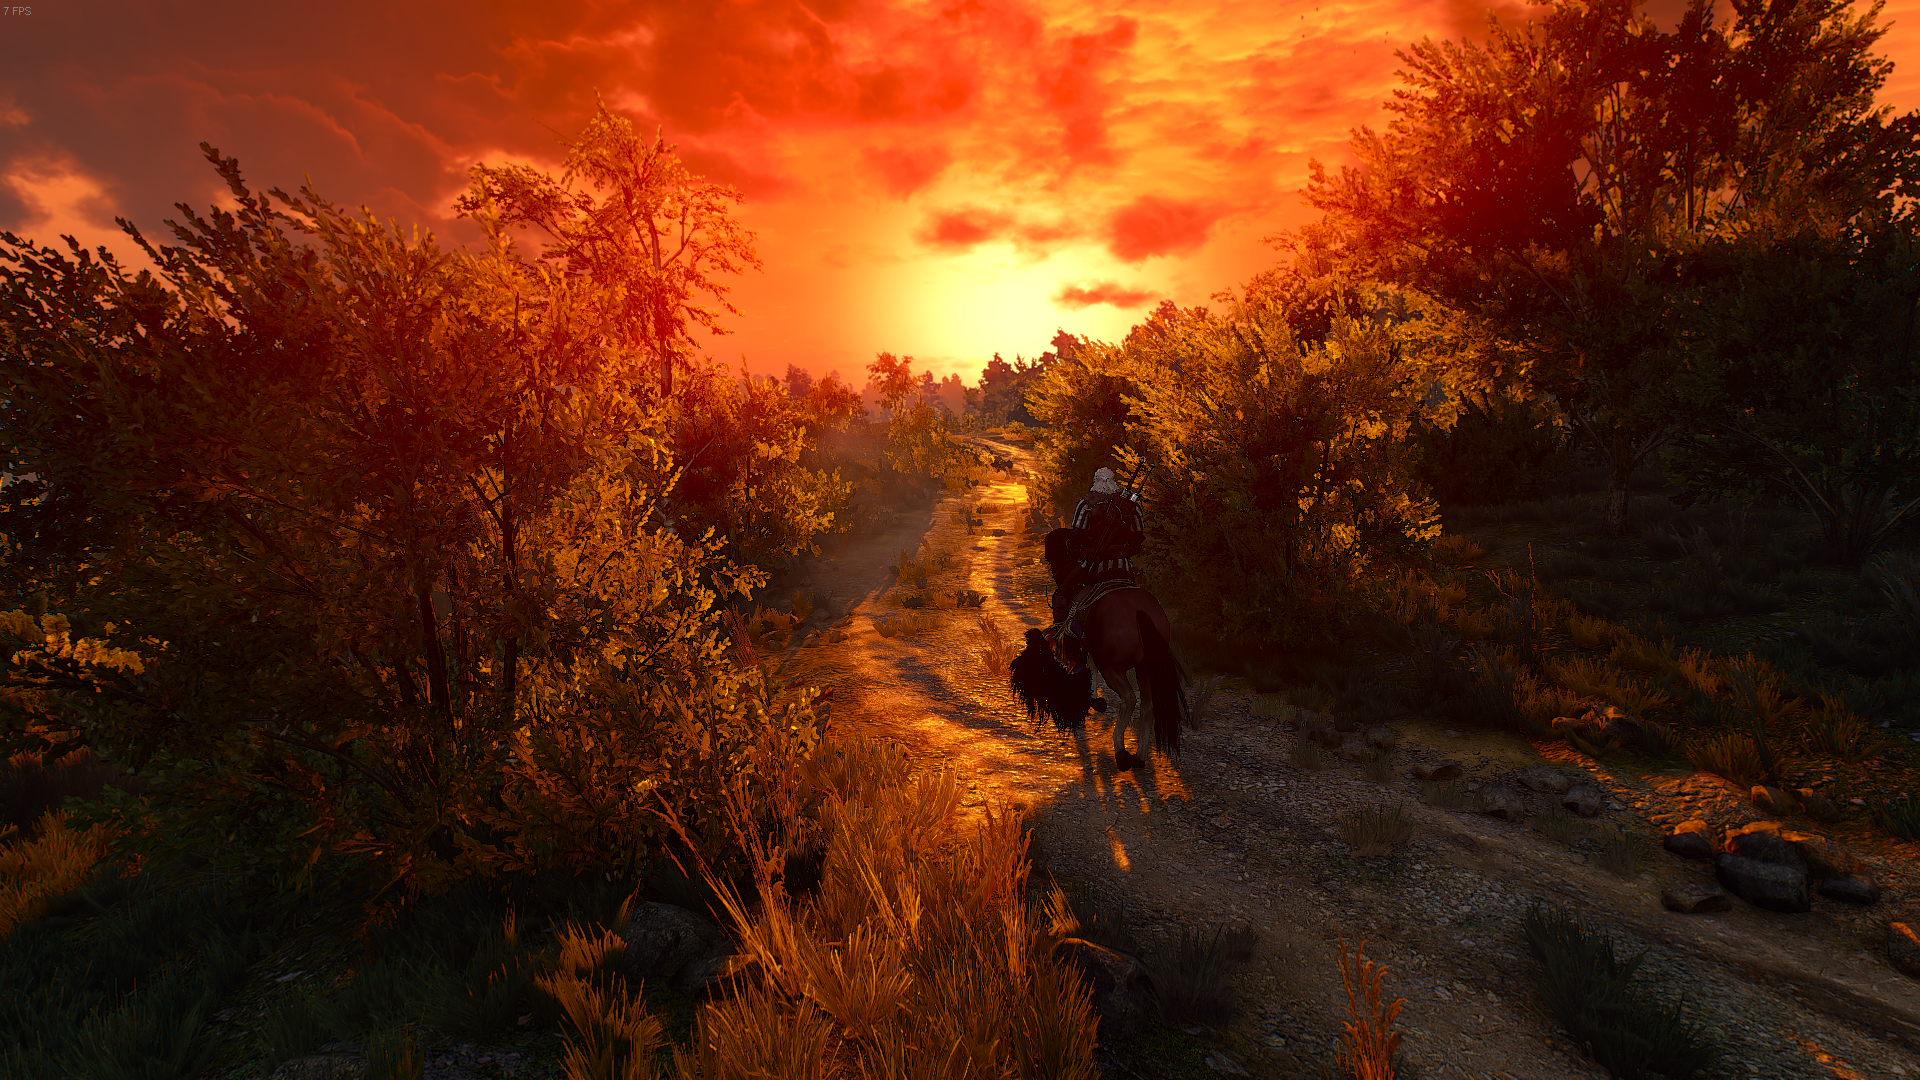 The Witcher 3 Super-Resolution 2020.07.19 - 21.53.02.38 Thumbnail.png - The Witcher 3: Wild Hunt